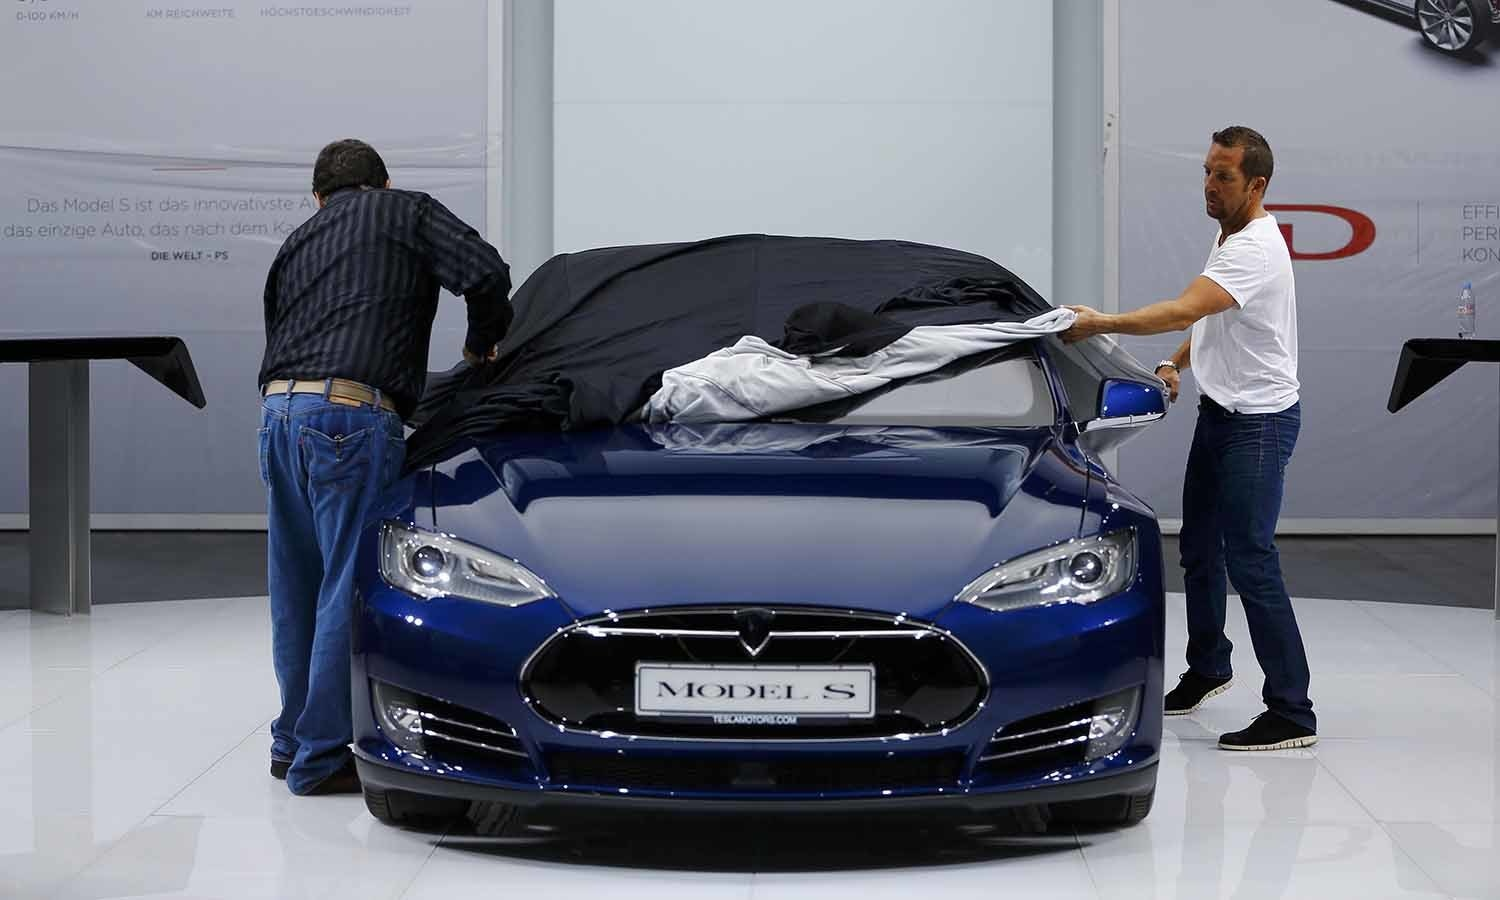 Employees cover a Tesla Model S car during the media day. ─ Reuters